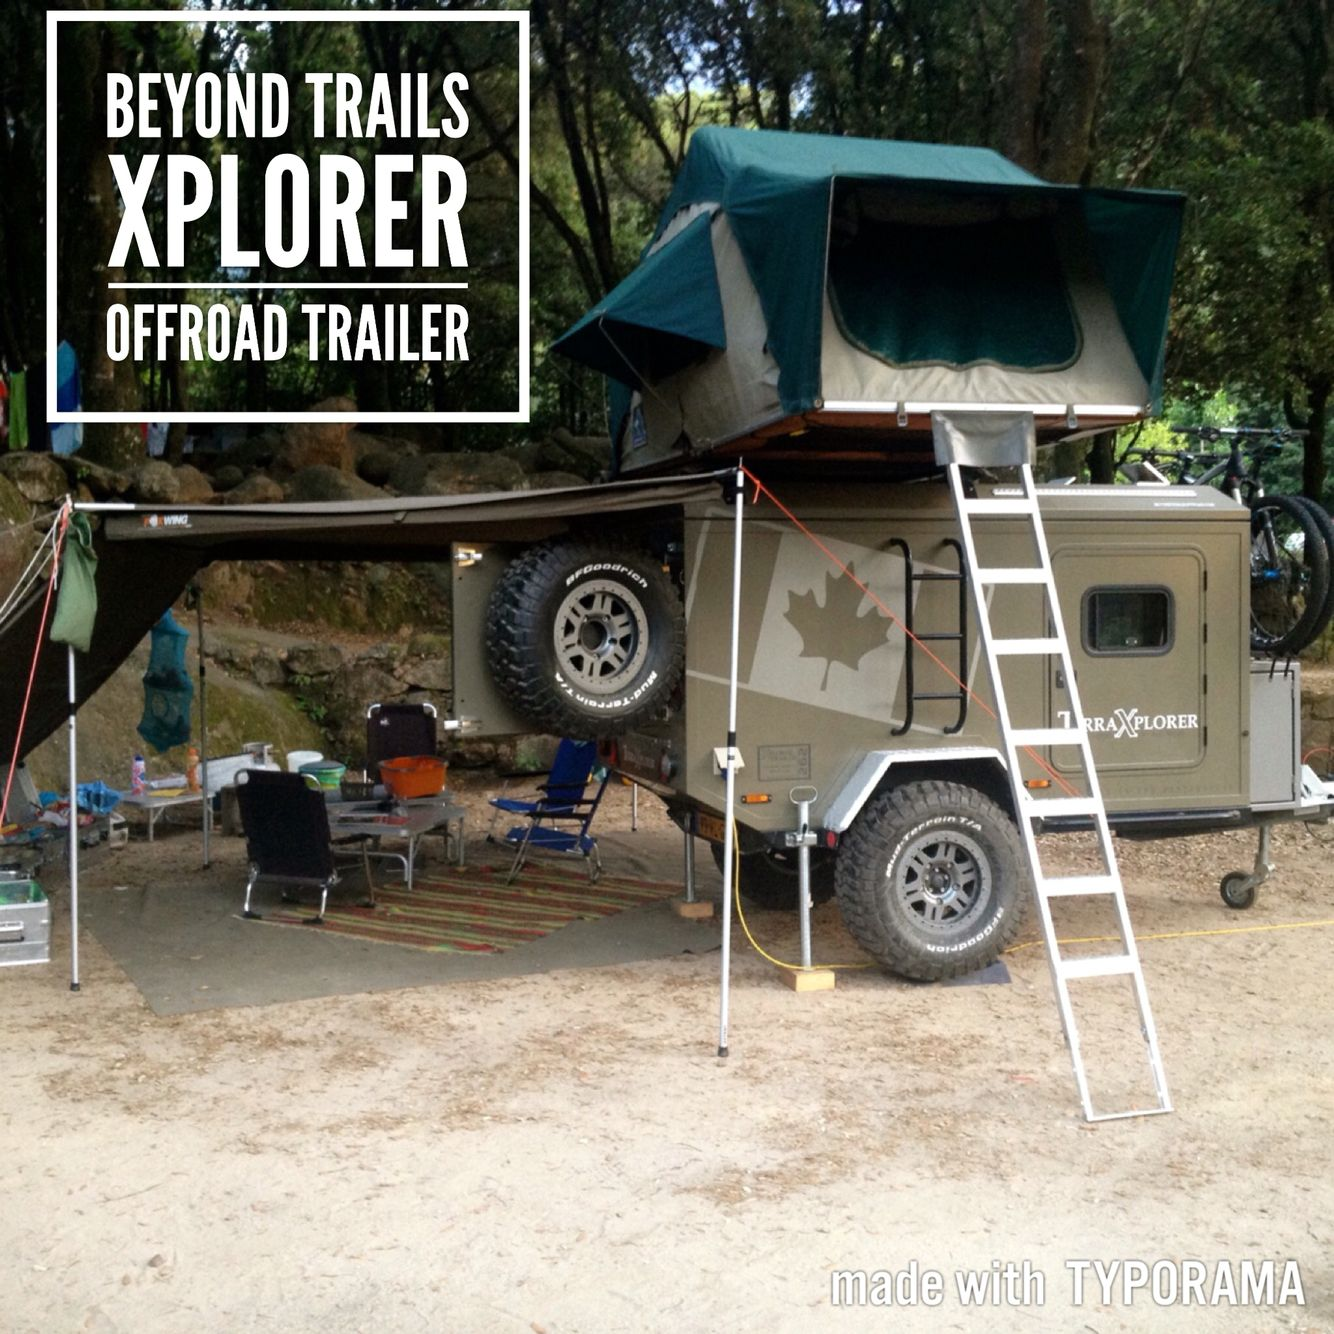 Terra Xplorer Offroad Trailer Beyondtrails Landrover Defender Lengthening Car Page 2 Pirate4x4com 4x4 And Roof Top Tent Off Road